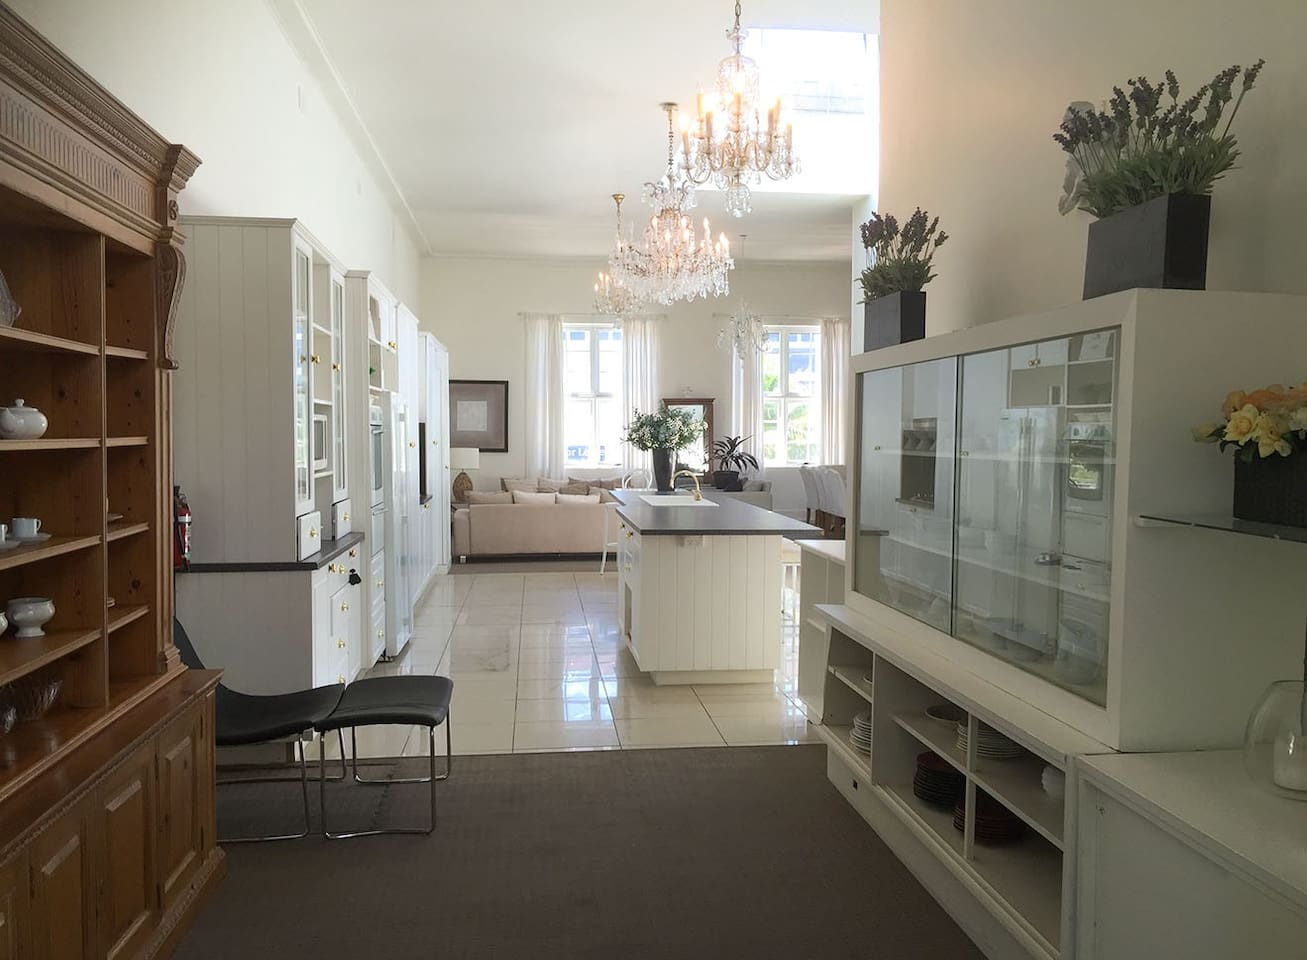 Open plan living with very high ceilings